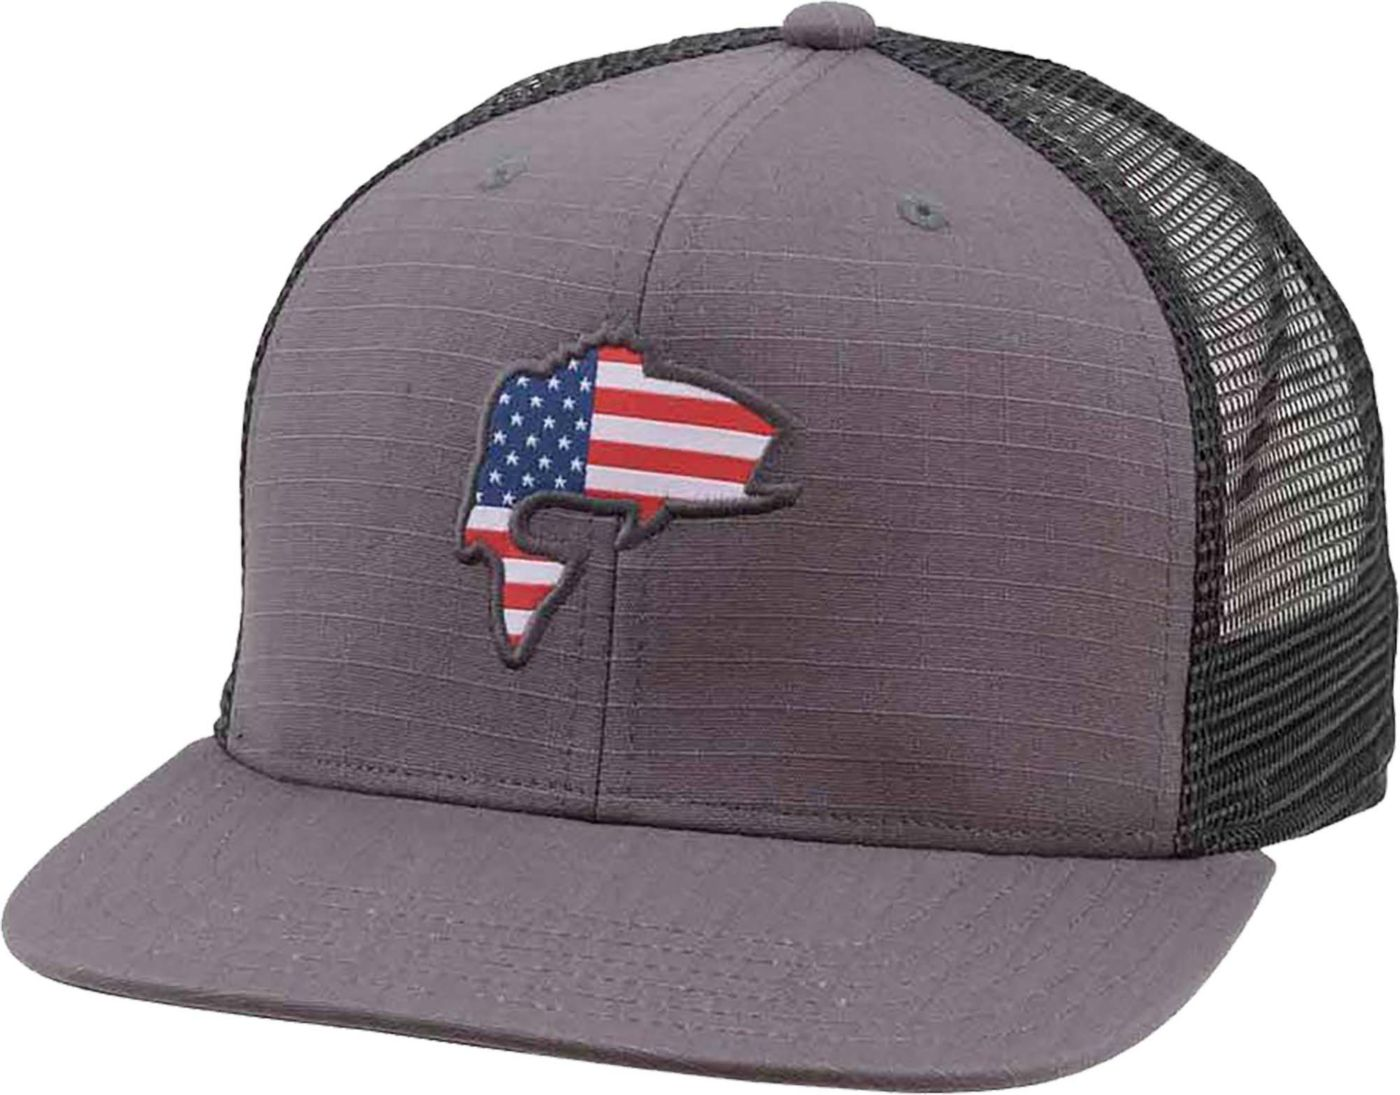 Simms Men's Bass Flag Trucker Hat